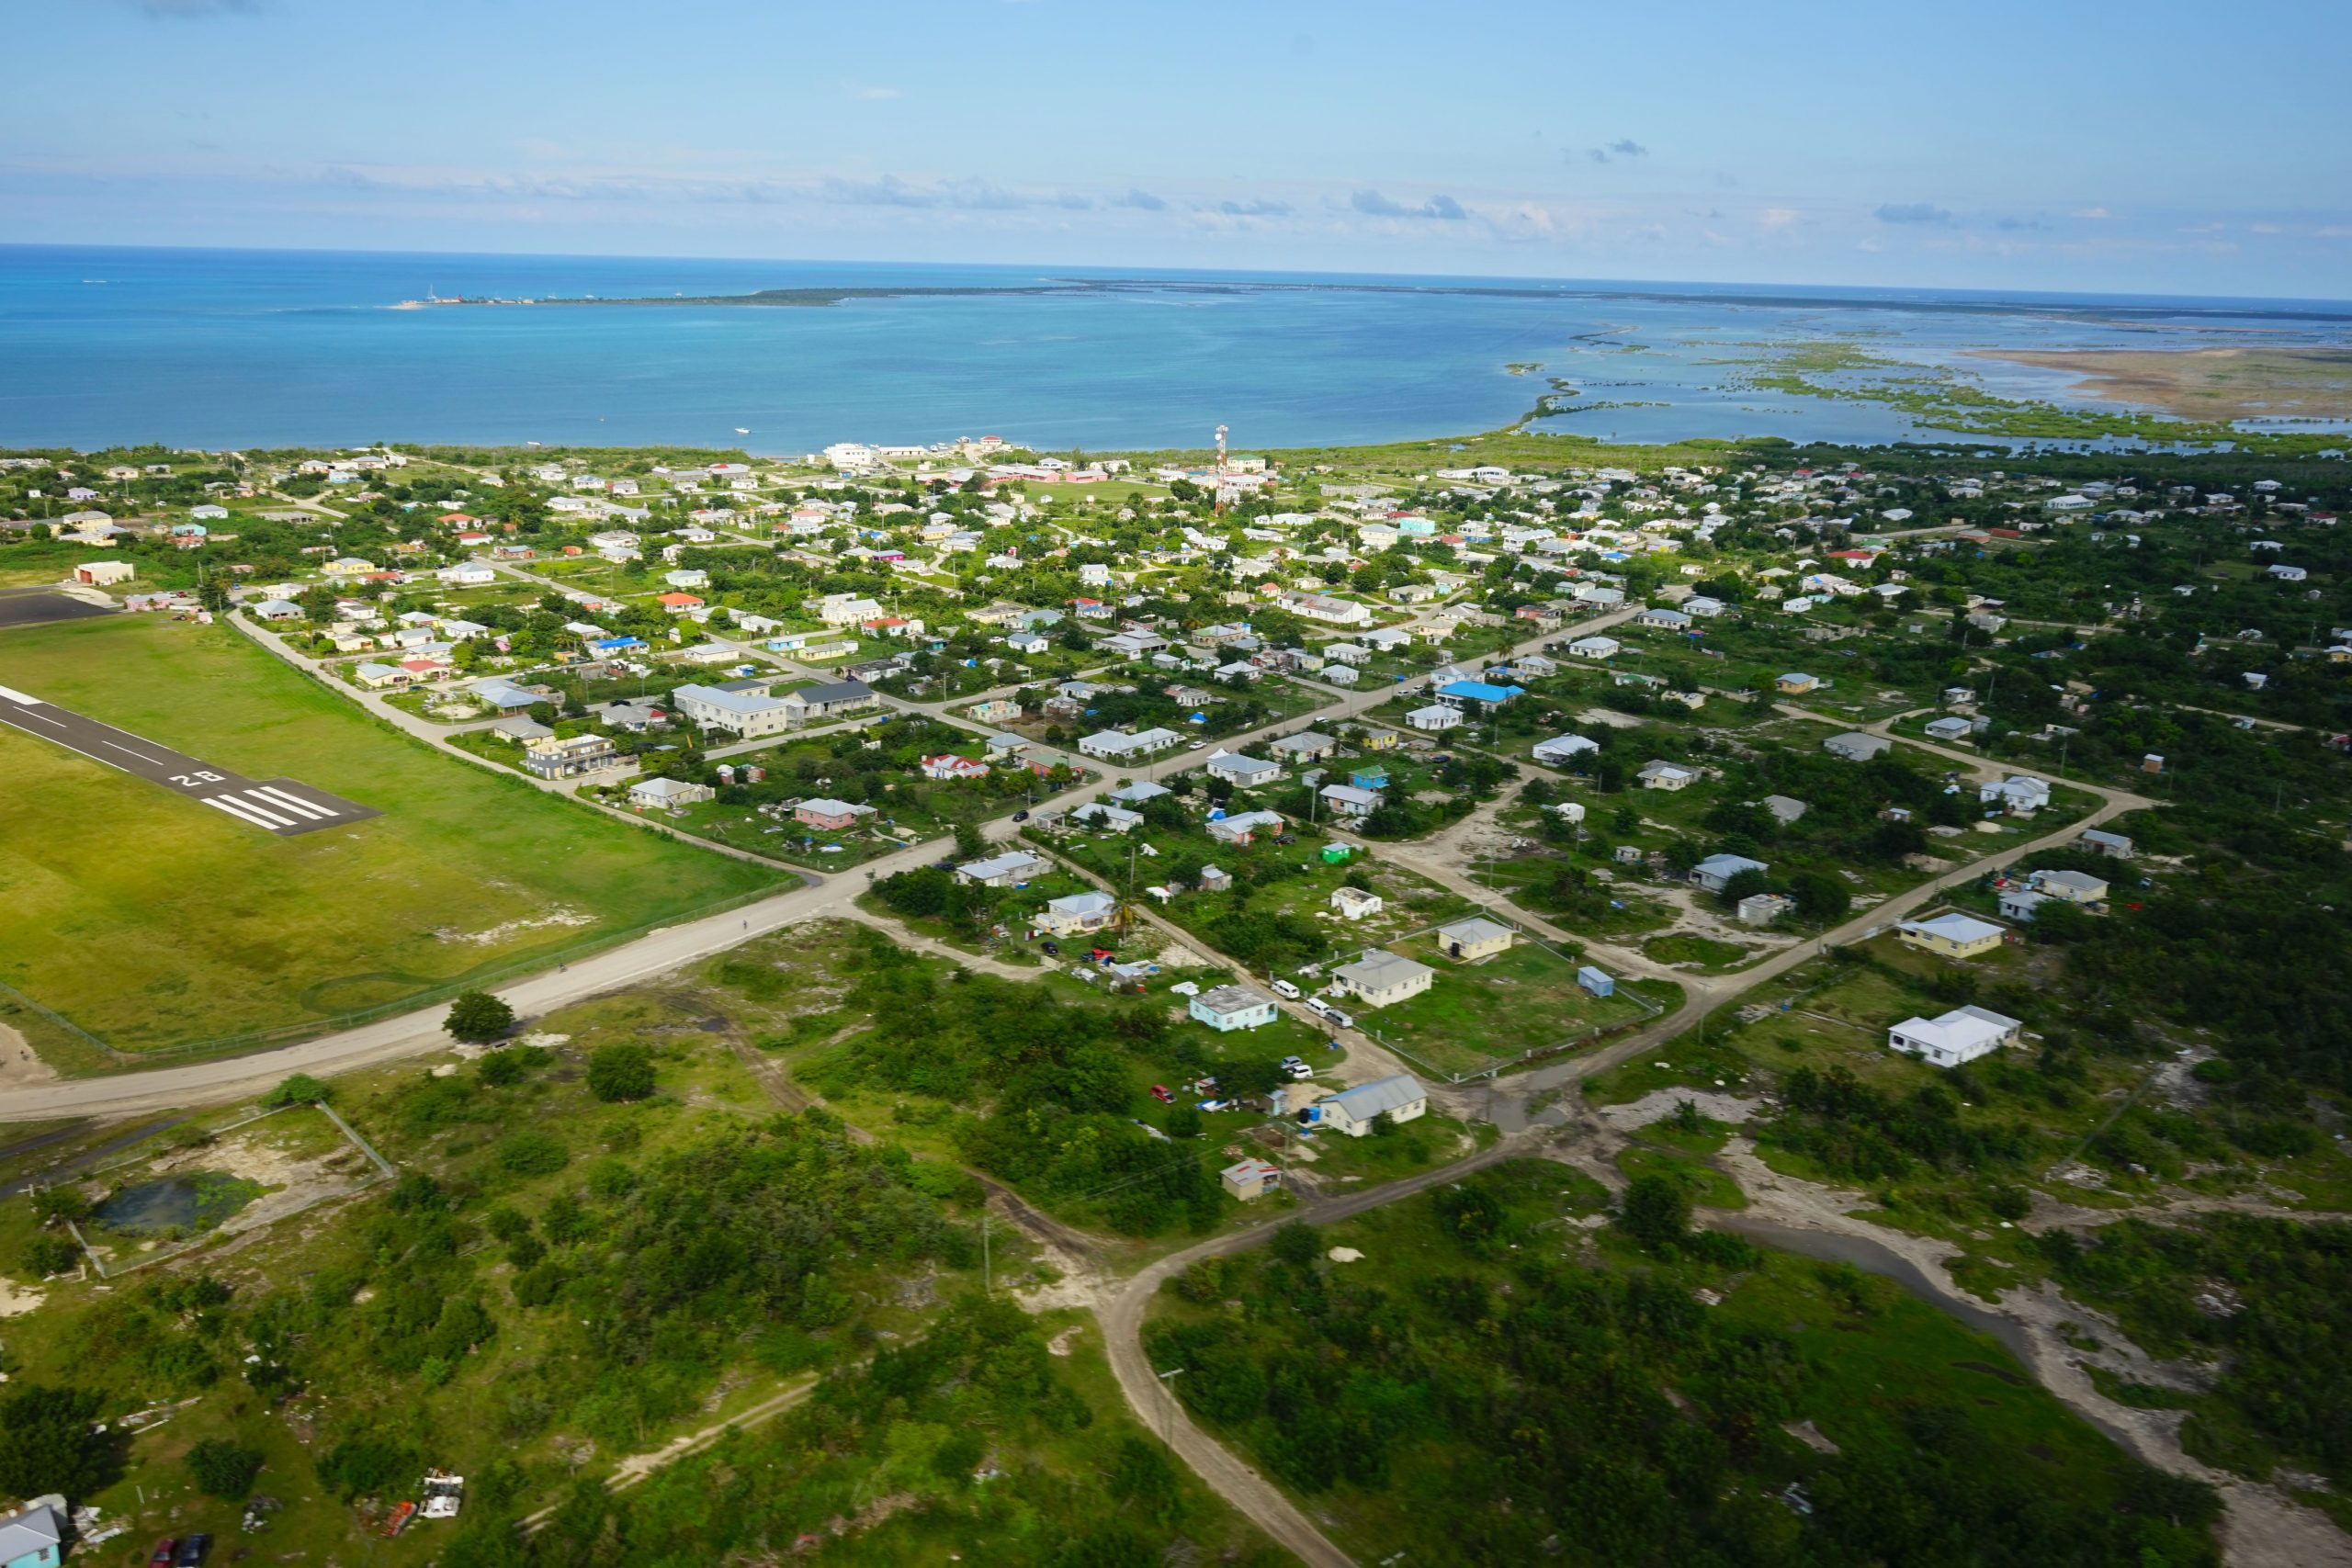 Yachters entering Barbuda 'illegally' putting island at risk, Council says